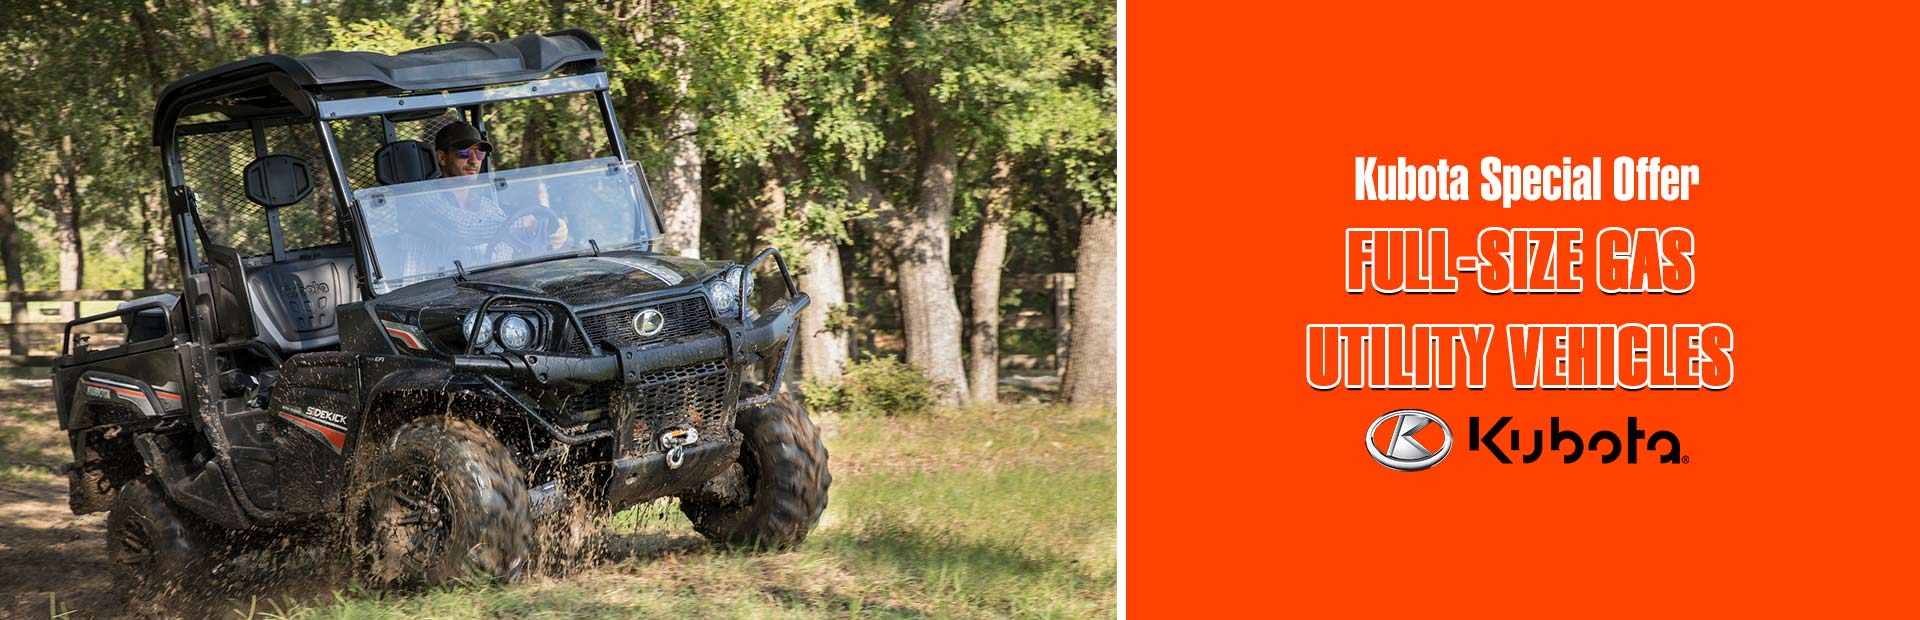 Kubota: Kubota Special Offer-FullSize Gas Utility Vehicles